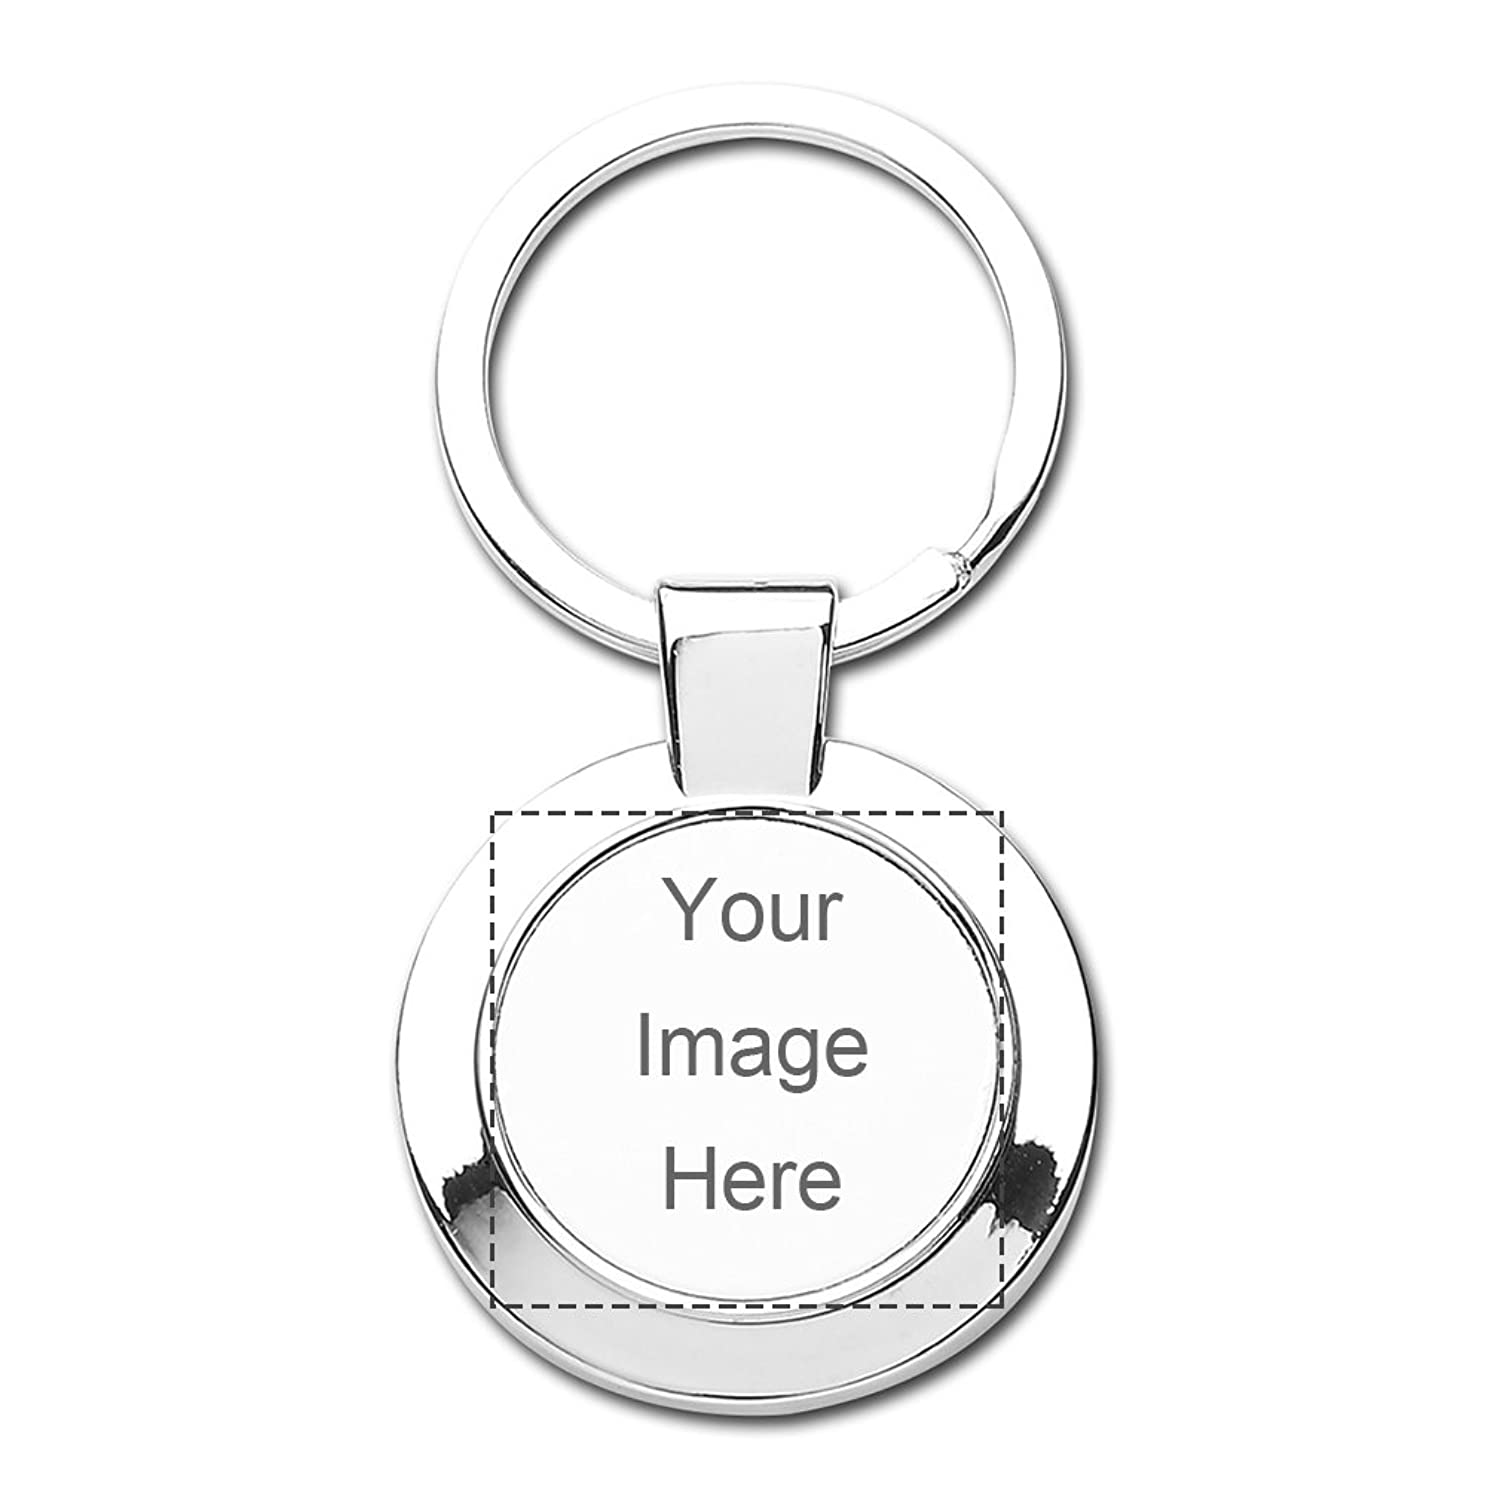 Design Prinablet photo or text Keychains Custom Personalized Round Keychain Set